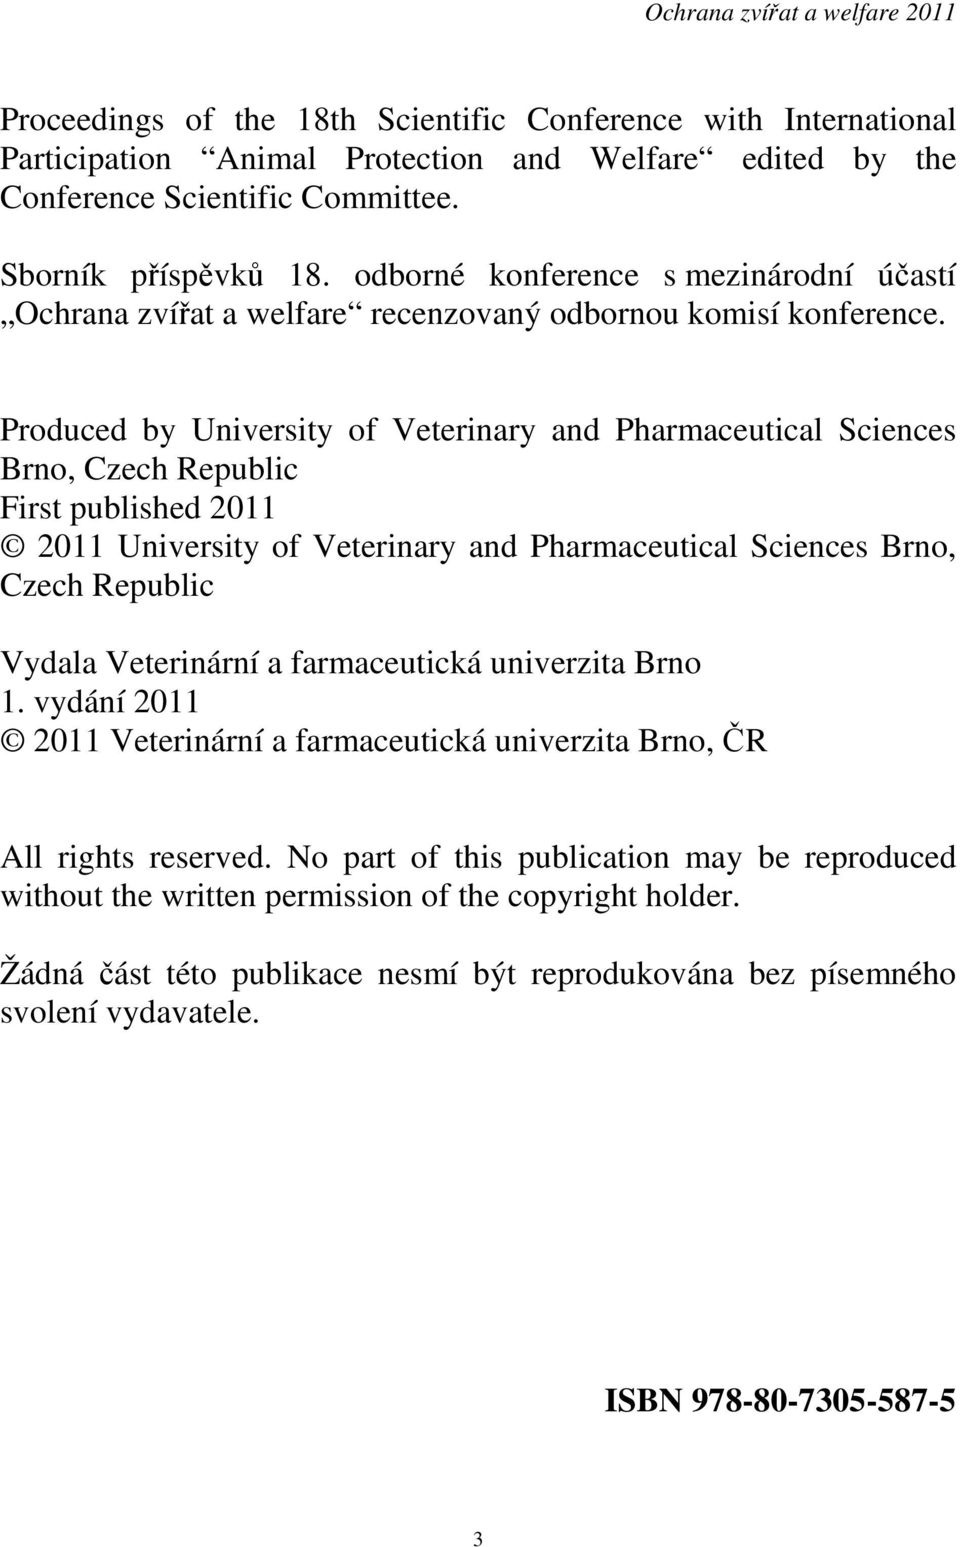 Produced by University of Veterinary and Pharmaceutical Sciences Brno, Czech Republic First published 2011 2011 University of Veterinary and Pharmaceutical Sciences Brno, Czech Republic Vydala